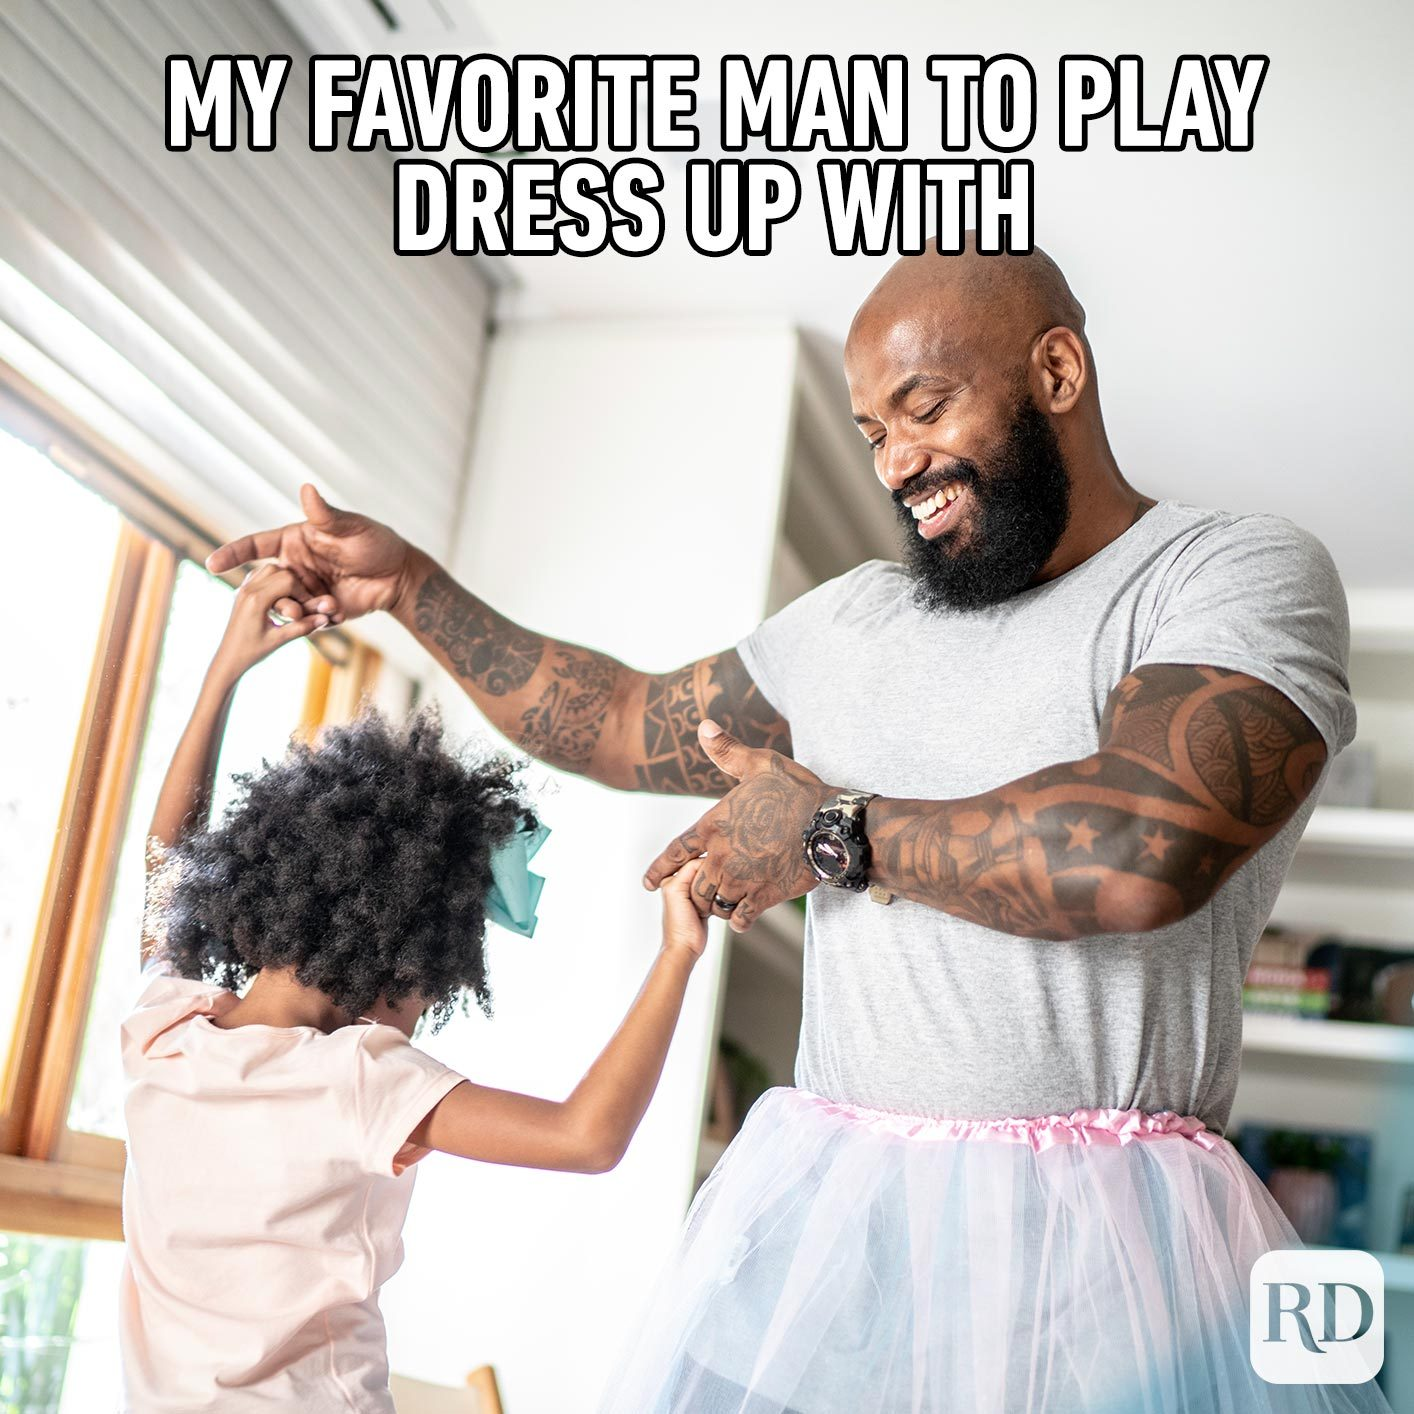 Dad and daughter dressed up as ballerinas. Meme text: My favorite man to play dress up with